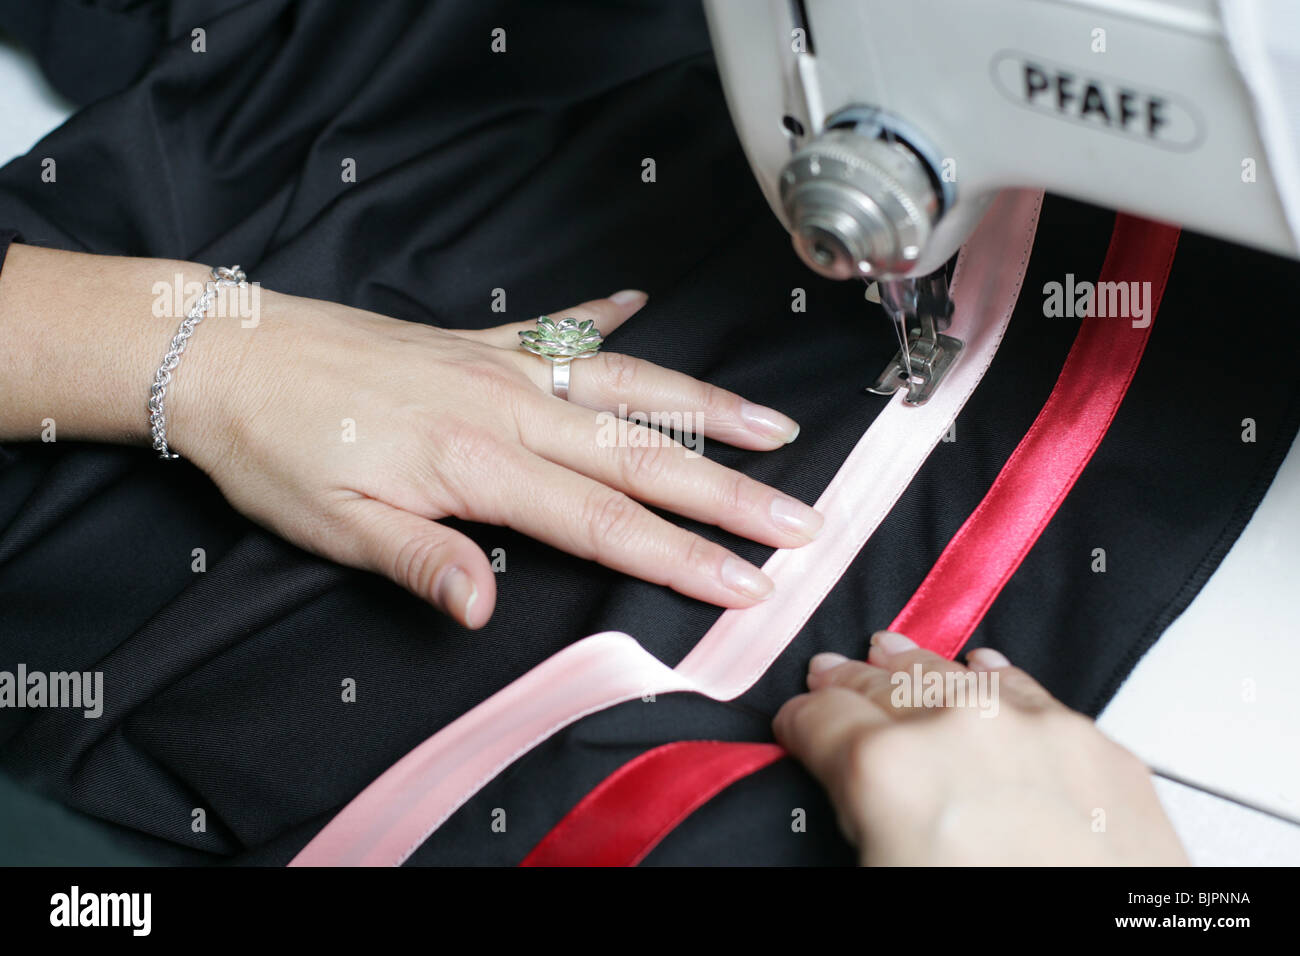 Woman working on a sewing machine. - Stock Image